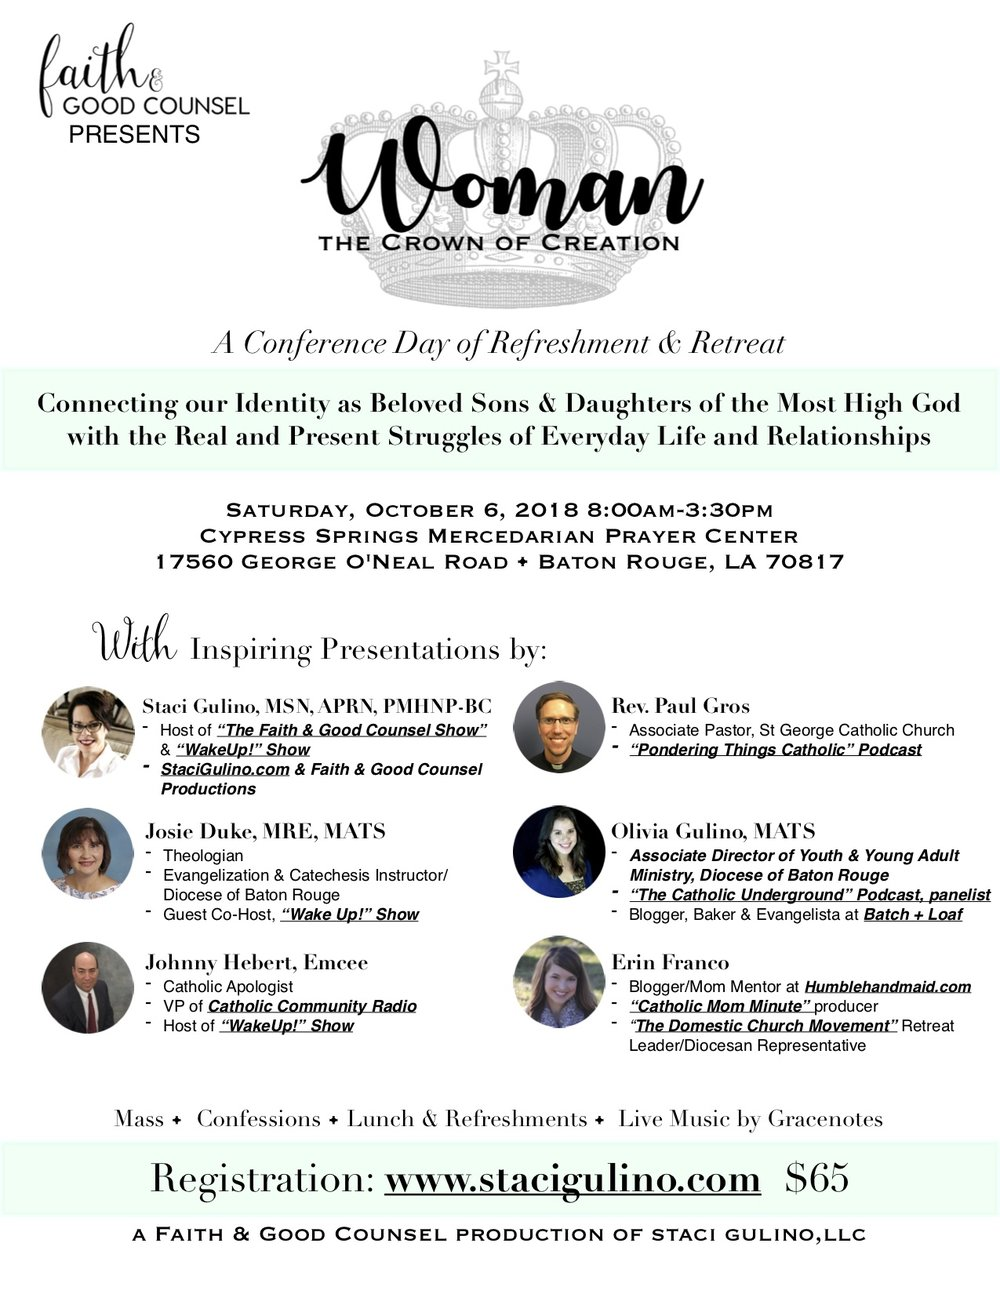 Woman Crown of Creation Flyer-rev 082218.jpg